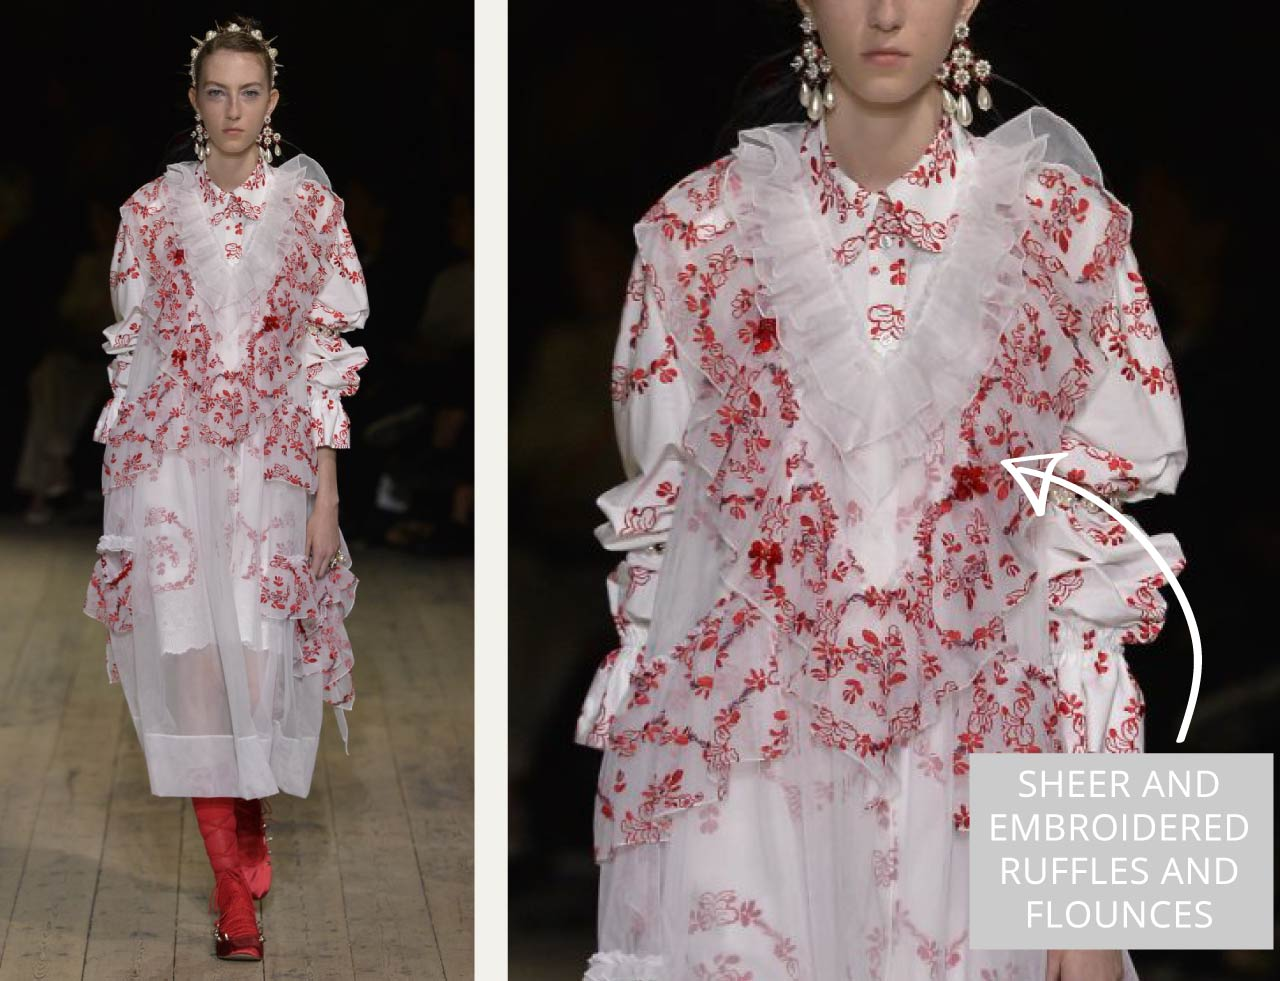 Translucent Layers at Simone Rocha | The Cutting Class. Sheer and embroidered ruffles and flounces.